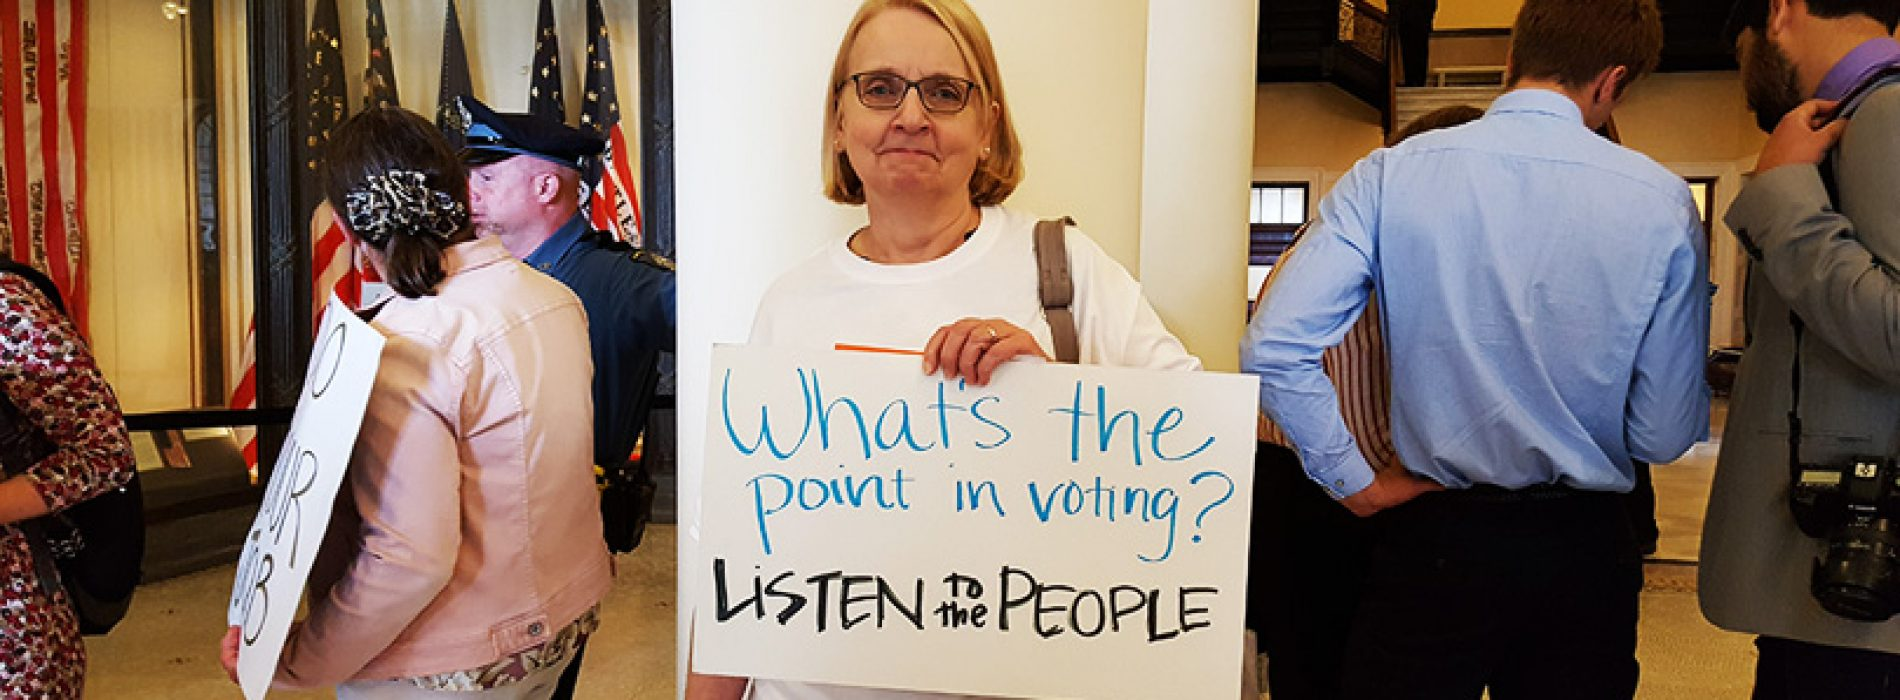 Despite setbacks, referenda are still a powerful tool for Maine people